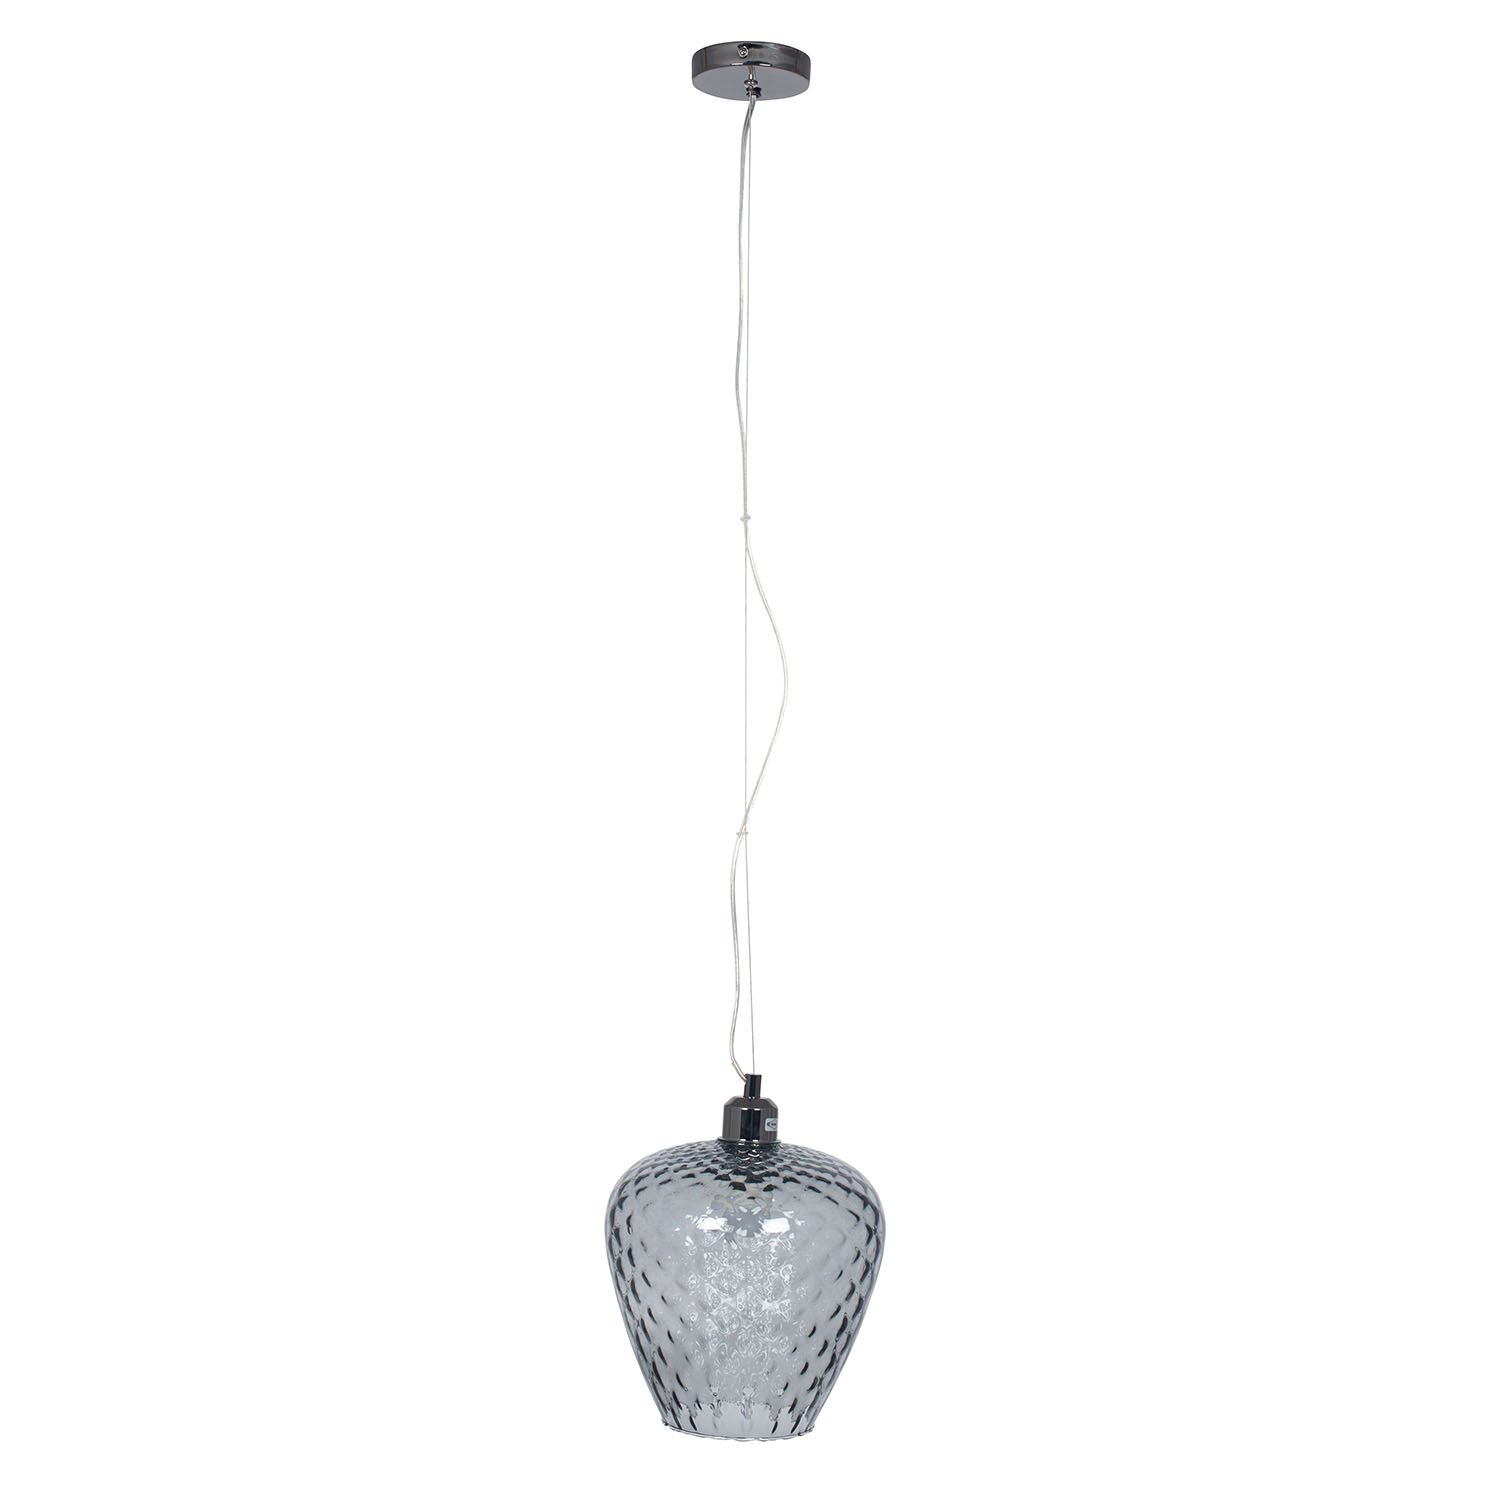 Image of Aimbry Textured Glass Pendant, Smoked